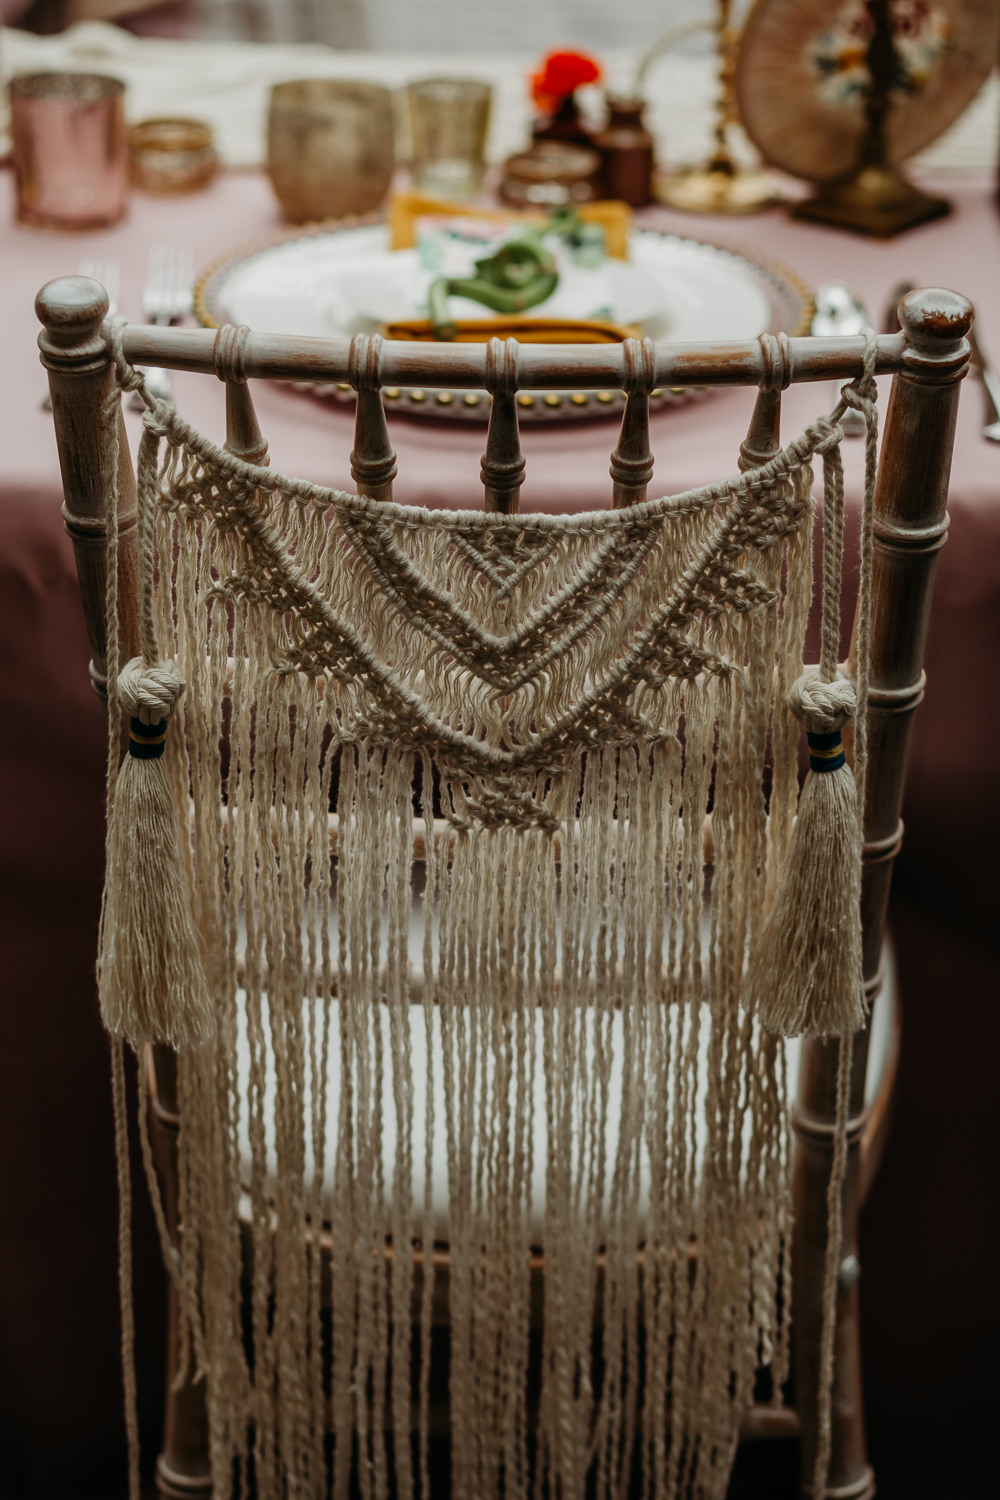 Macrame Chairs Decor Decoration Hanging Tropical Wedding Ideas When Charlie Met Hannah